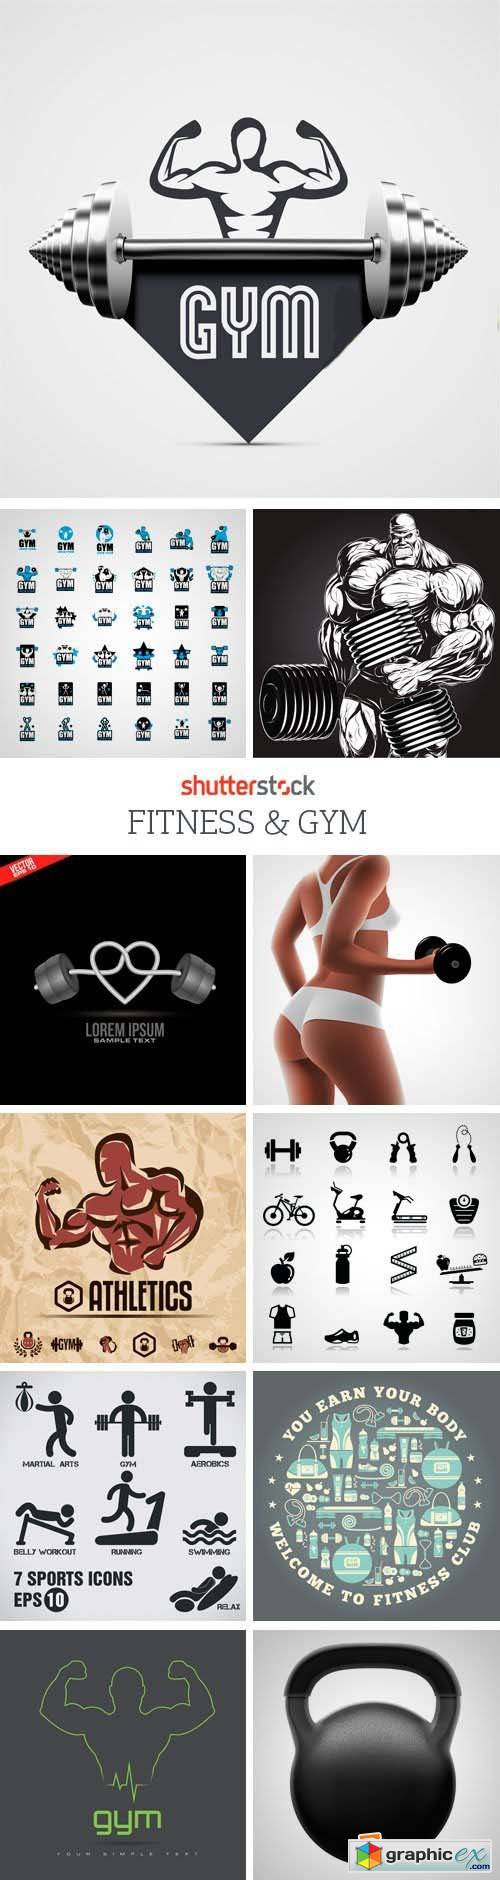 Amazing SS - Fitness & Gym, 25xEPS